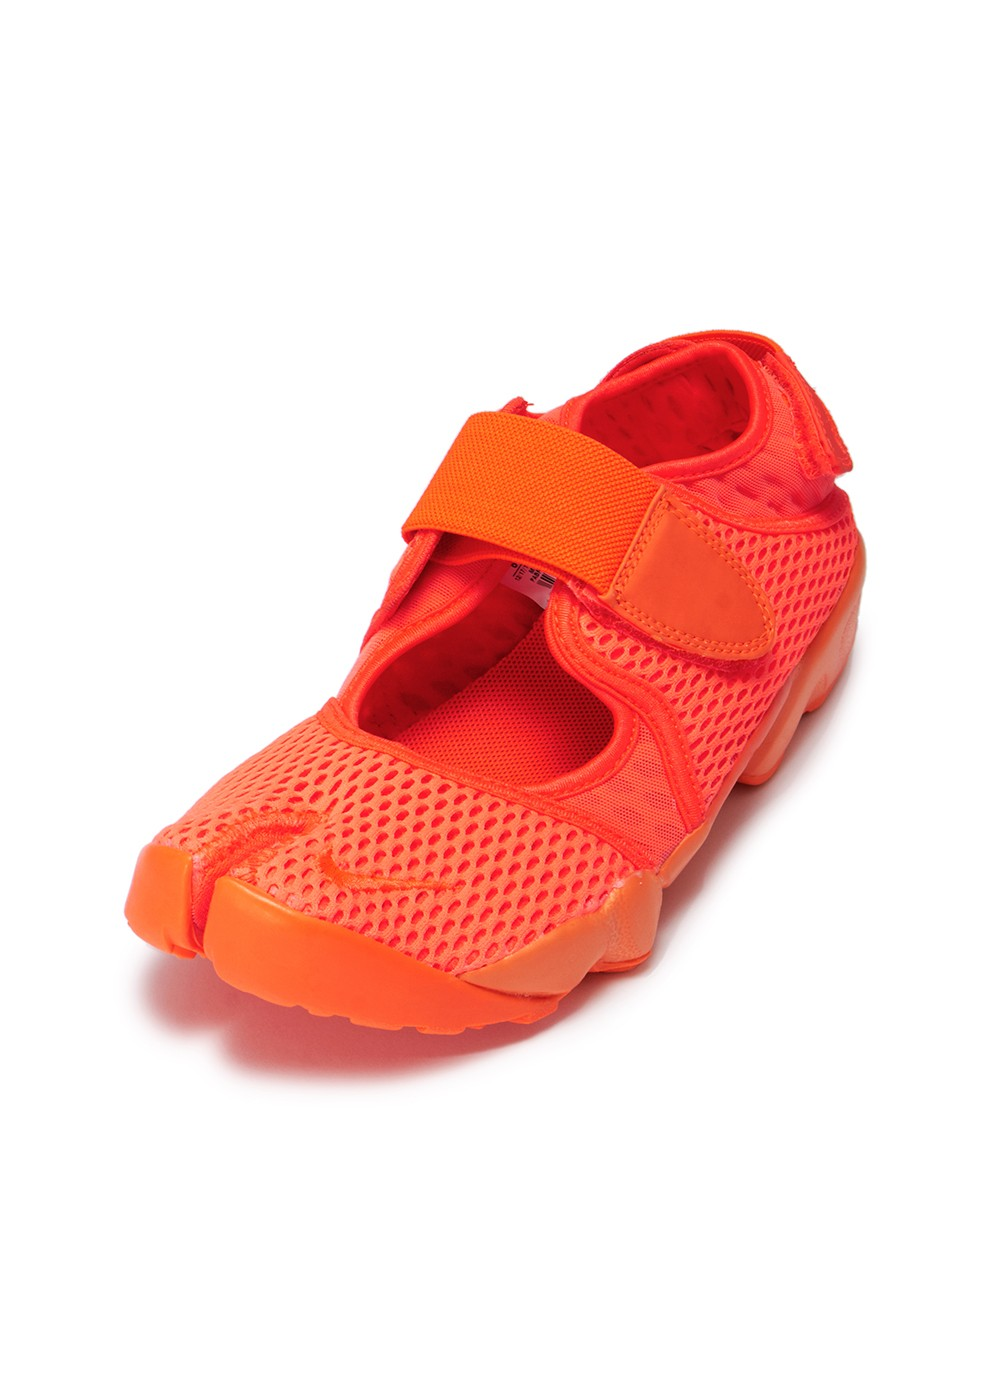 AIR RIFT BR 847609-800【NIKE】|ORANGE|スニーカー|Styles